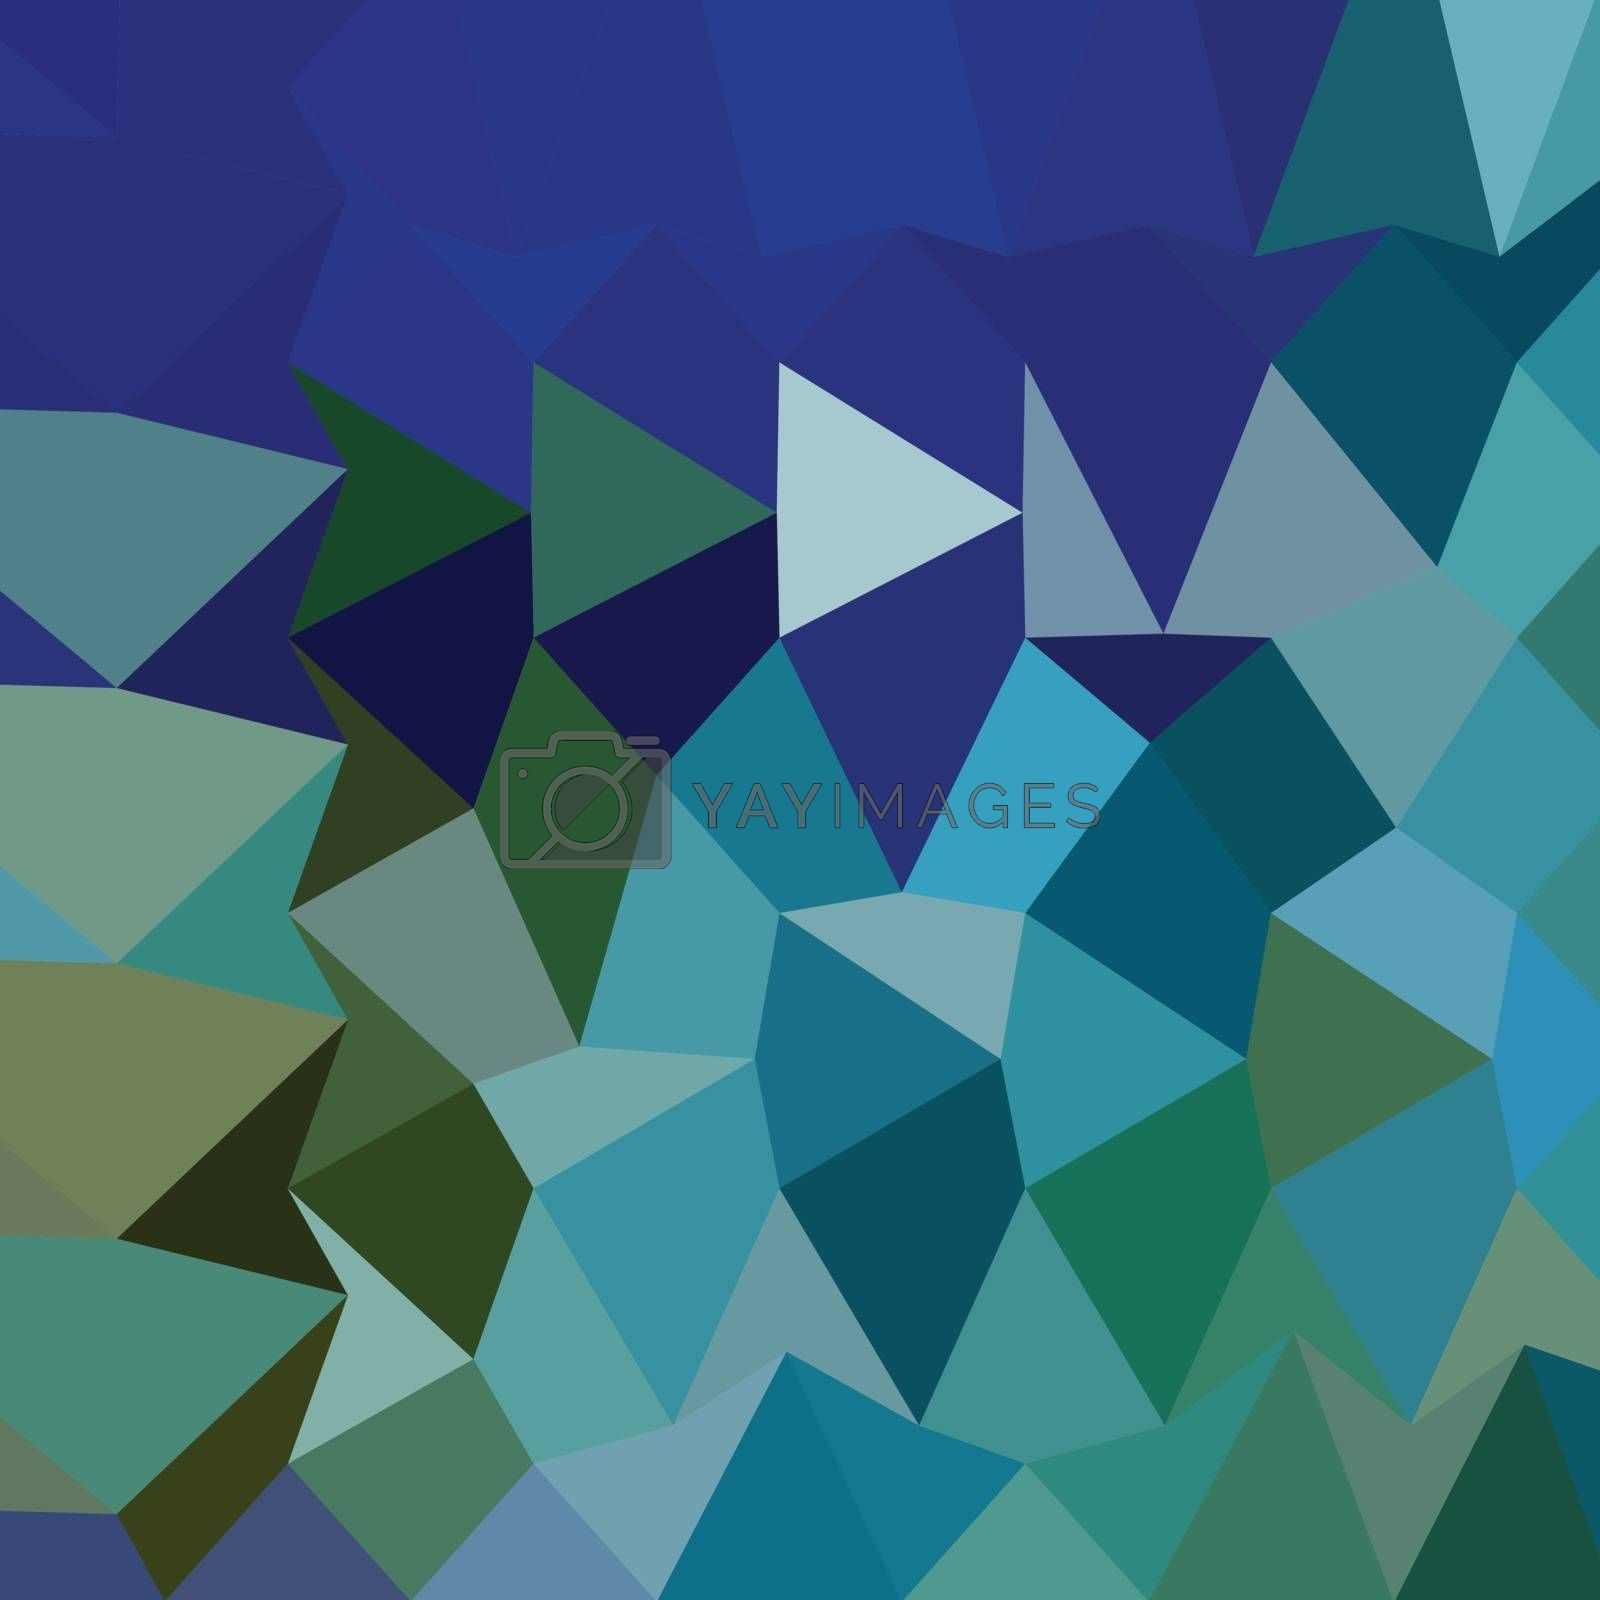 Low polygon style illustration of a blue pigment abstract geometric background.